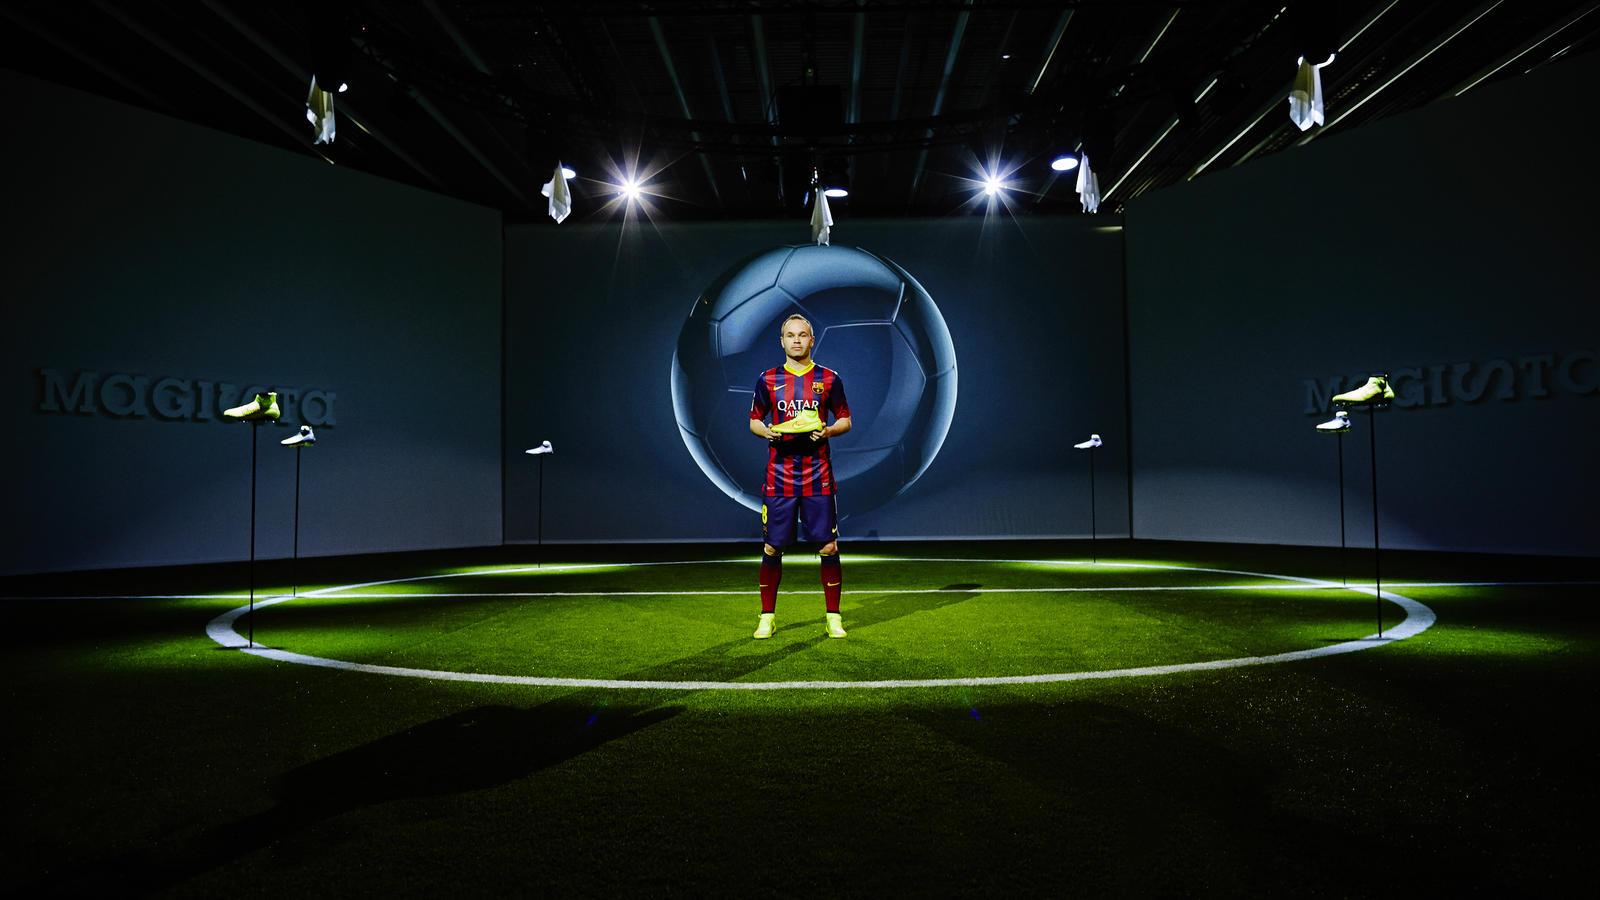 Andres Iniesta and The Magista